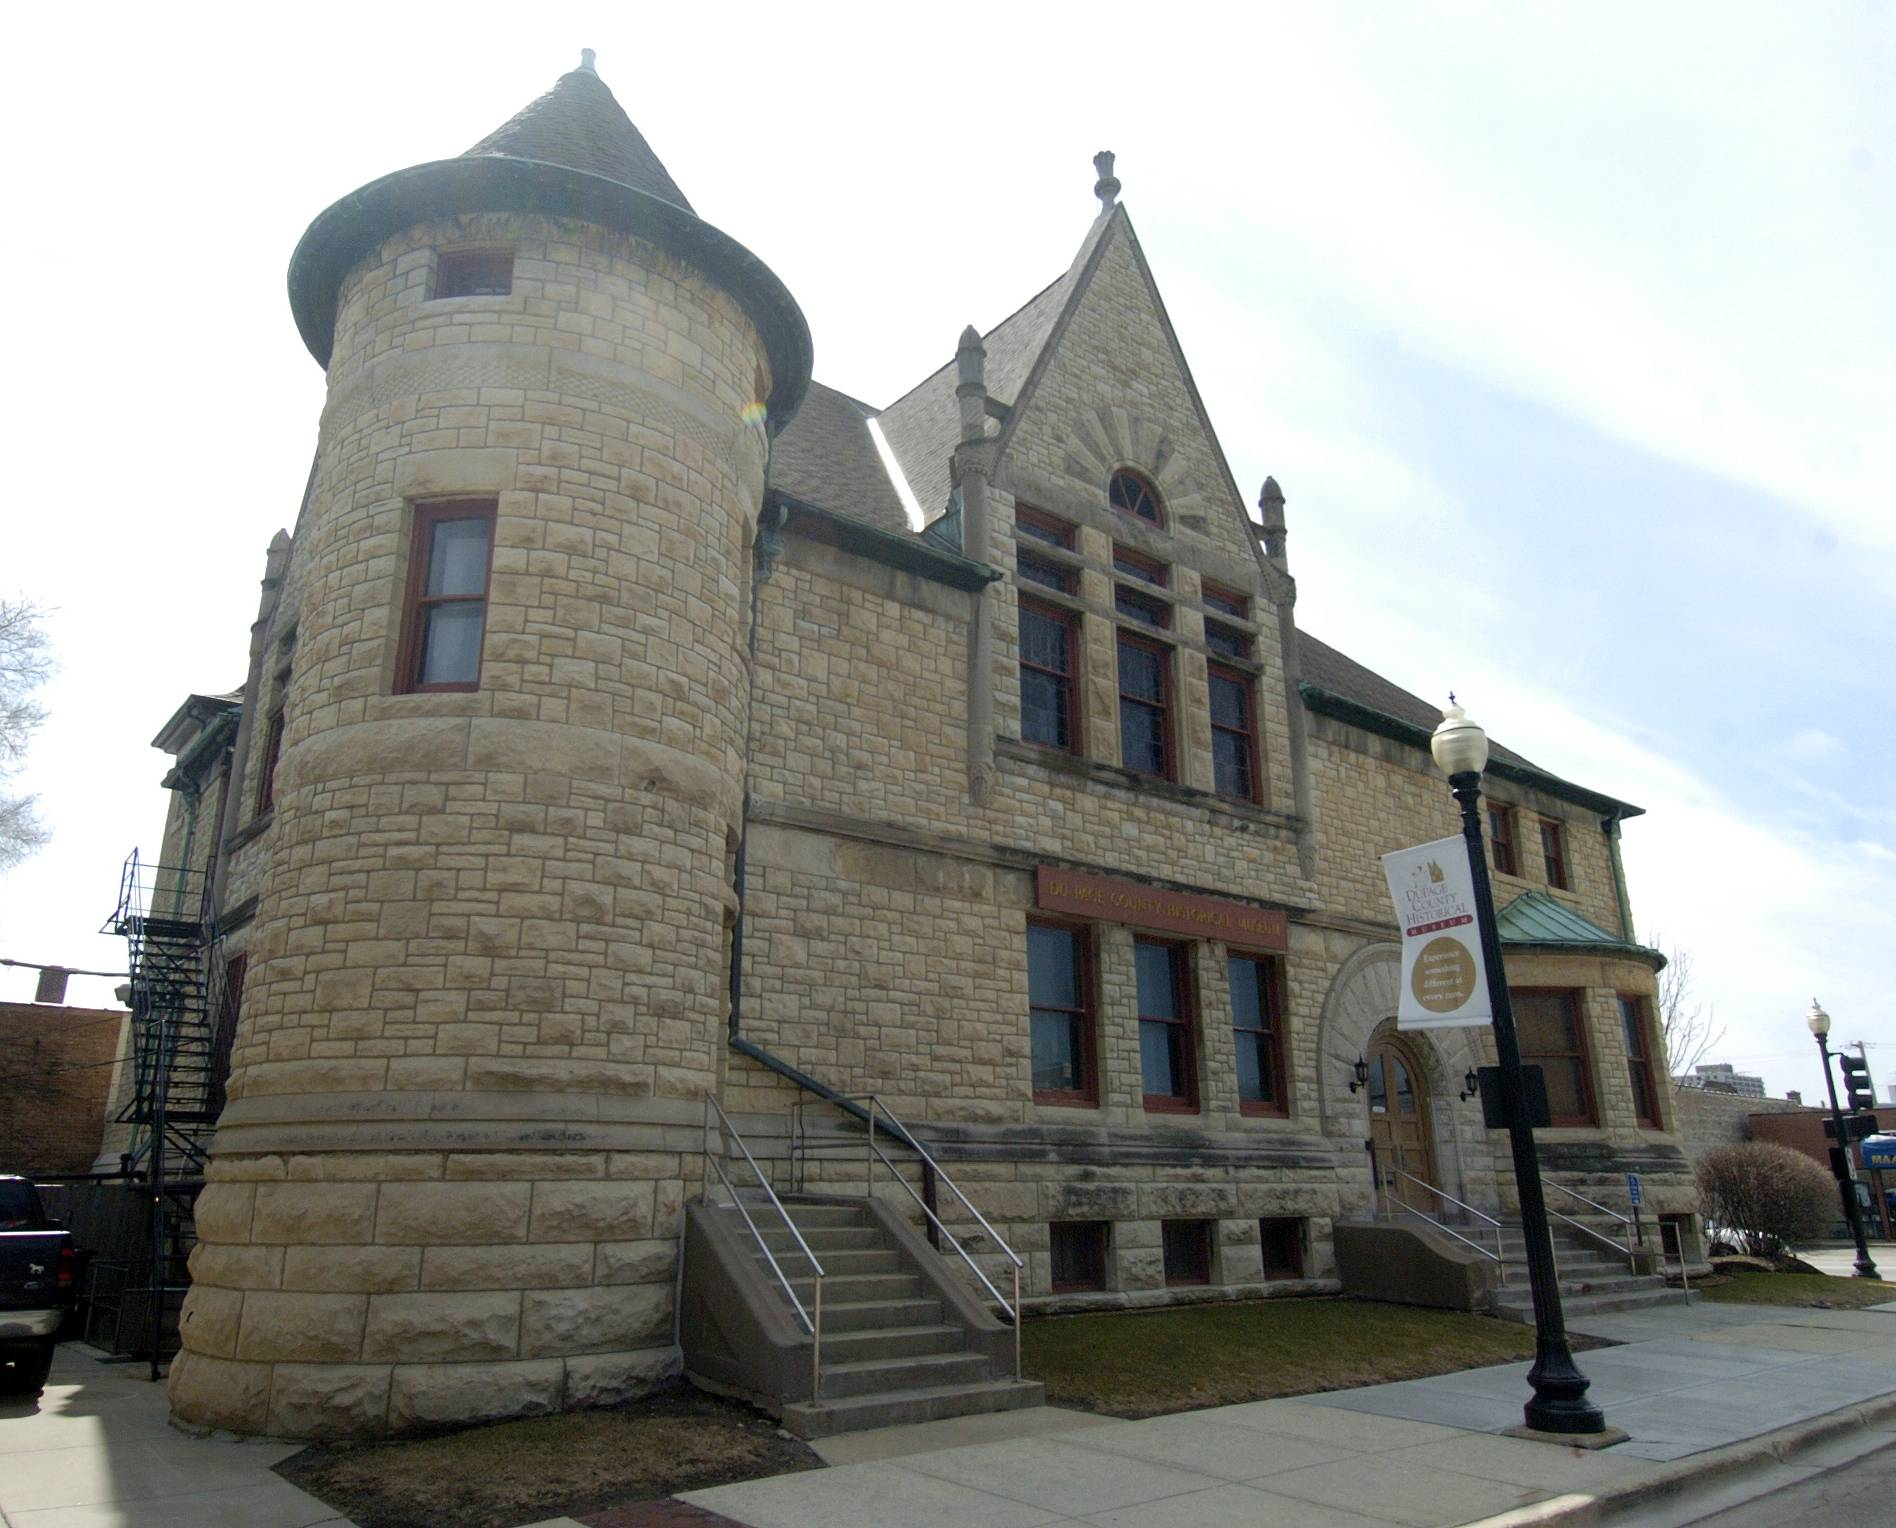 The DuPage County Historical Museum building was erected in 1891 at 102 E. Wesley St. in Wheaton and served as the community's library before the museum opened in 1967.